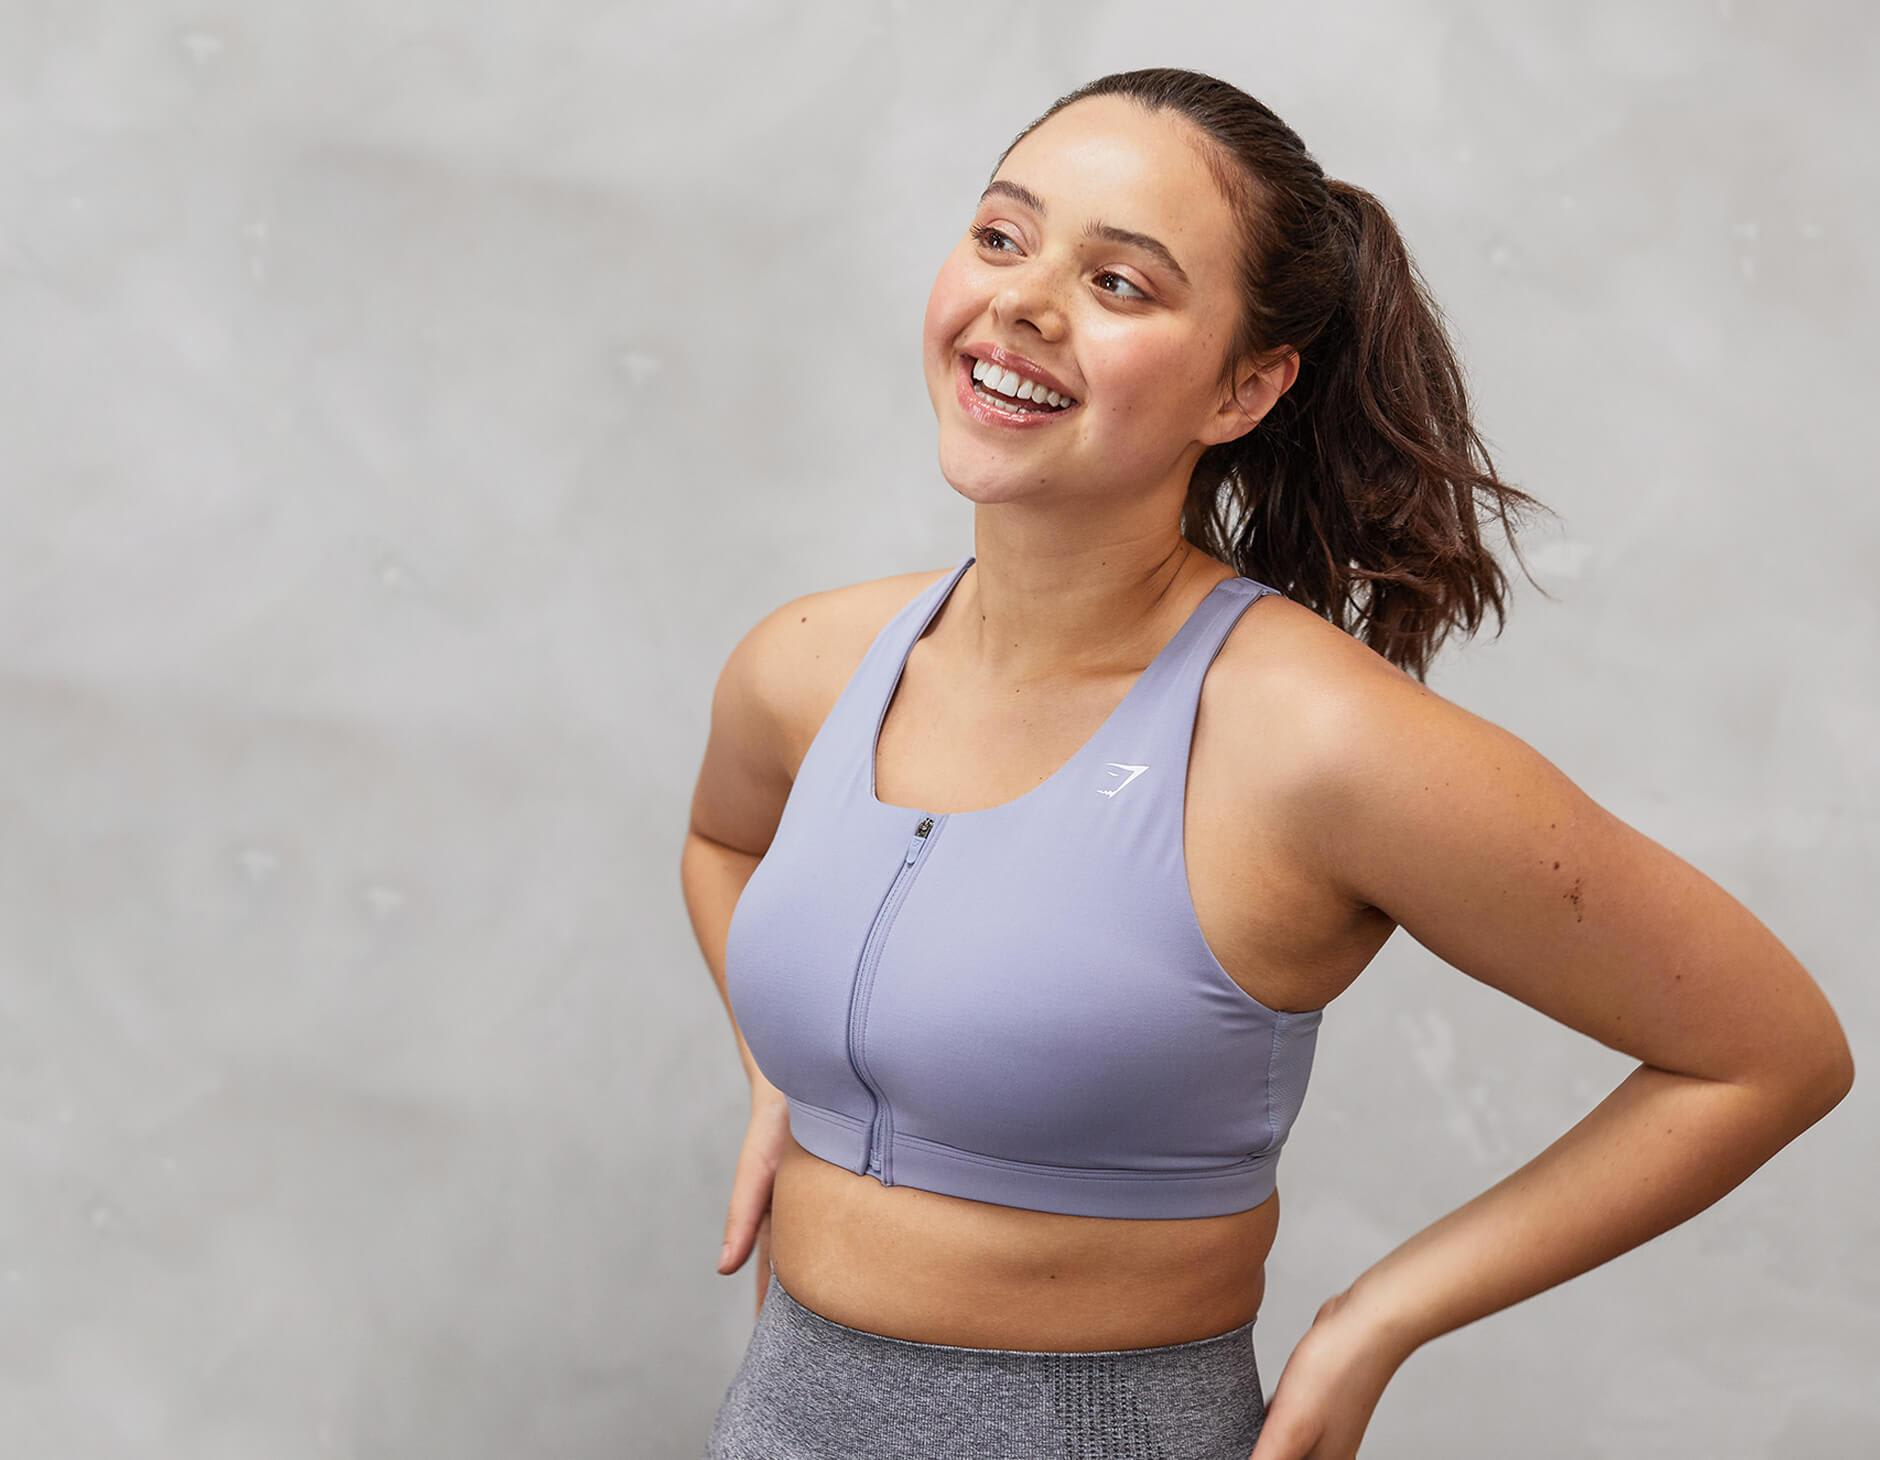 A model wearing a purple Gymshark sports bra posing very happily in front of a grey concrete wall.